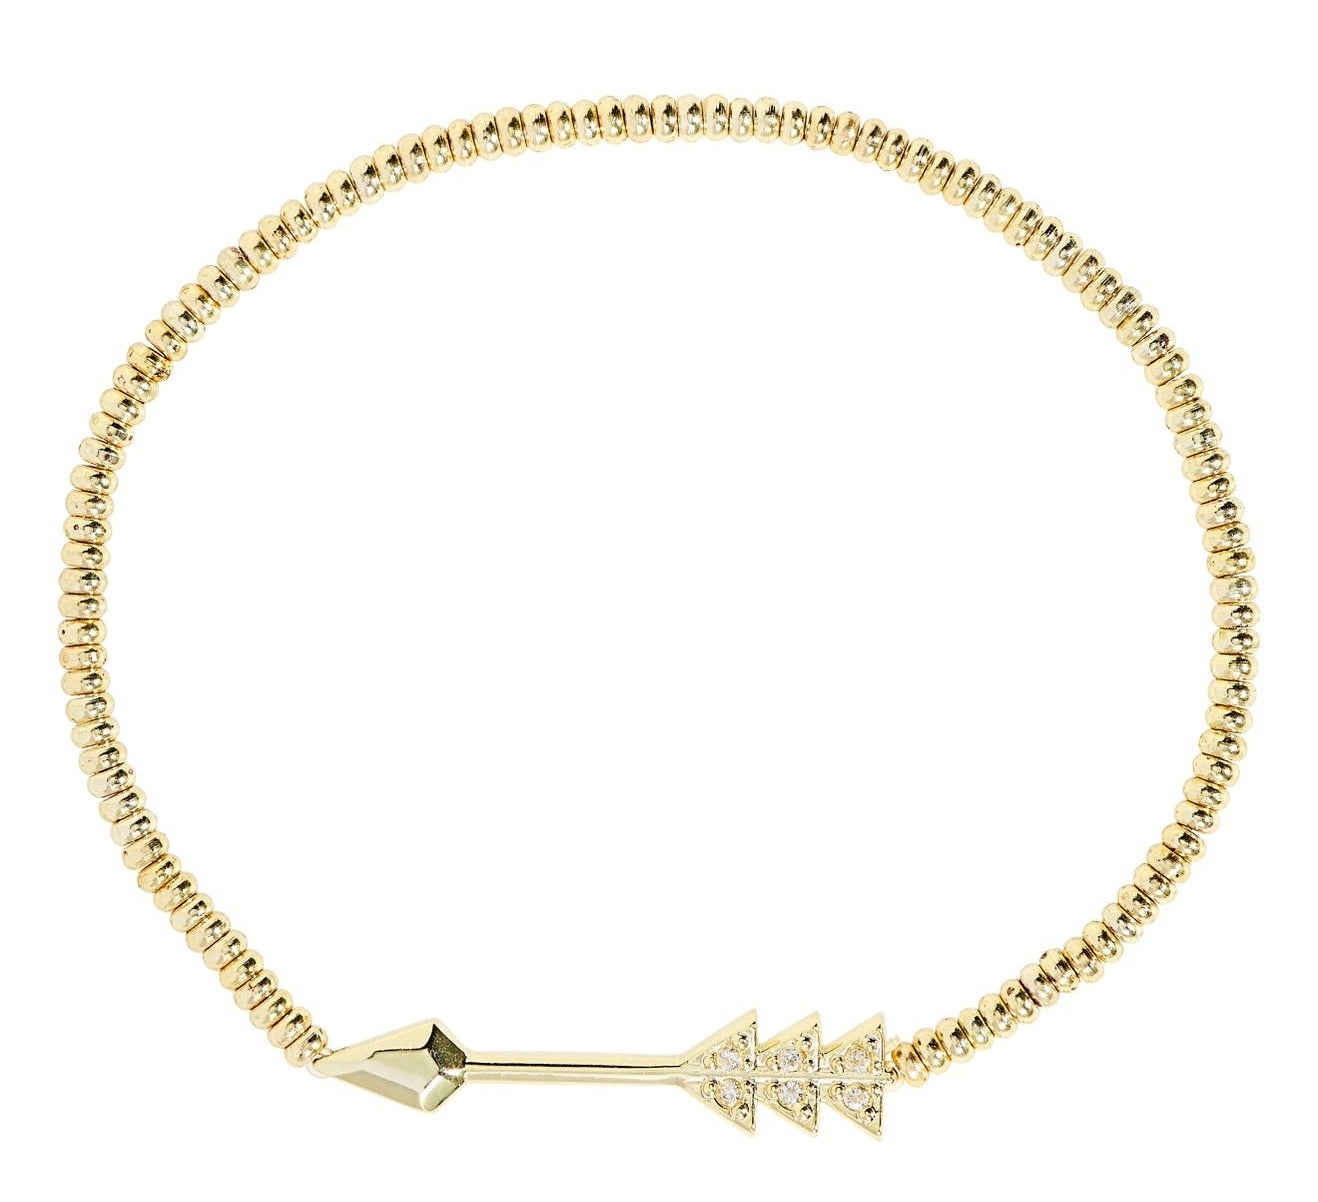 gold stretchy bracelet with an arrow charm